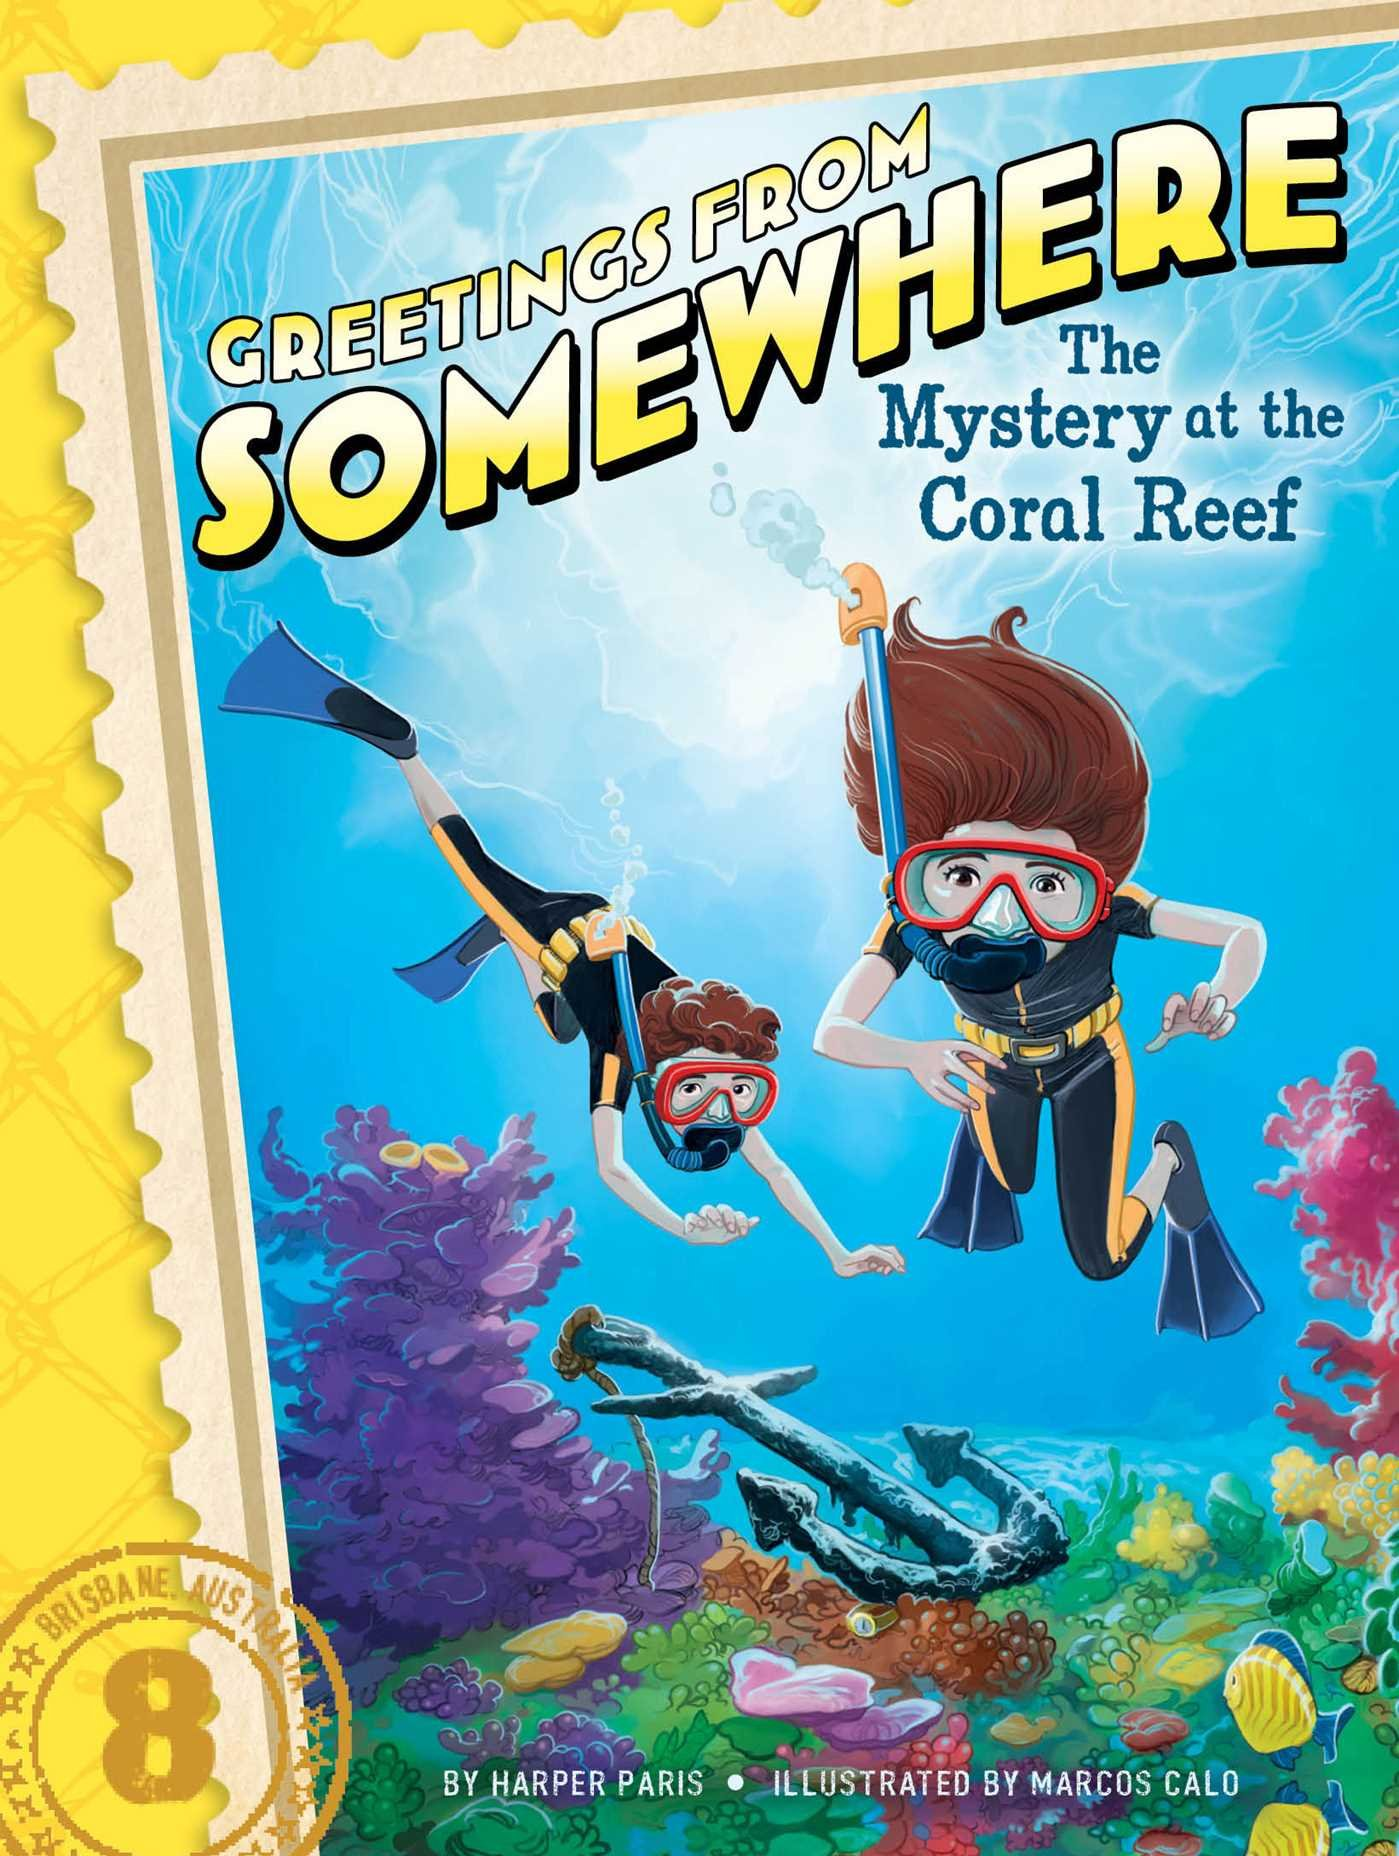 Amazon the mystery at the coral reef greetings from somewhere amazon the mystery at the coral reef greetings from somewhere 9781481423700 harper paris marcos calo books kristyandbryce Images